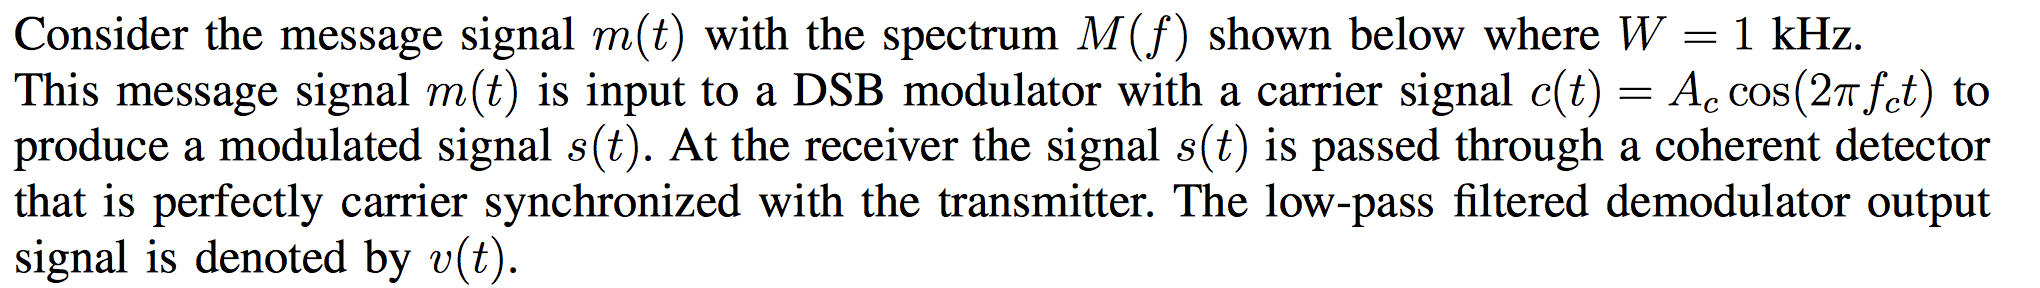 Consider the message signal m(t) with the spectrum